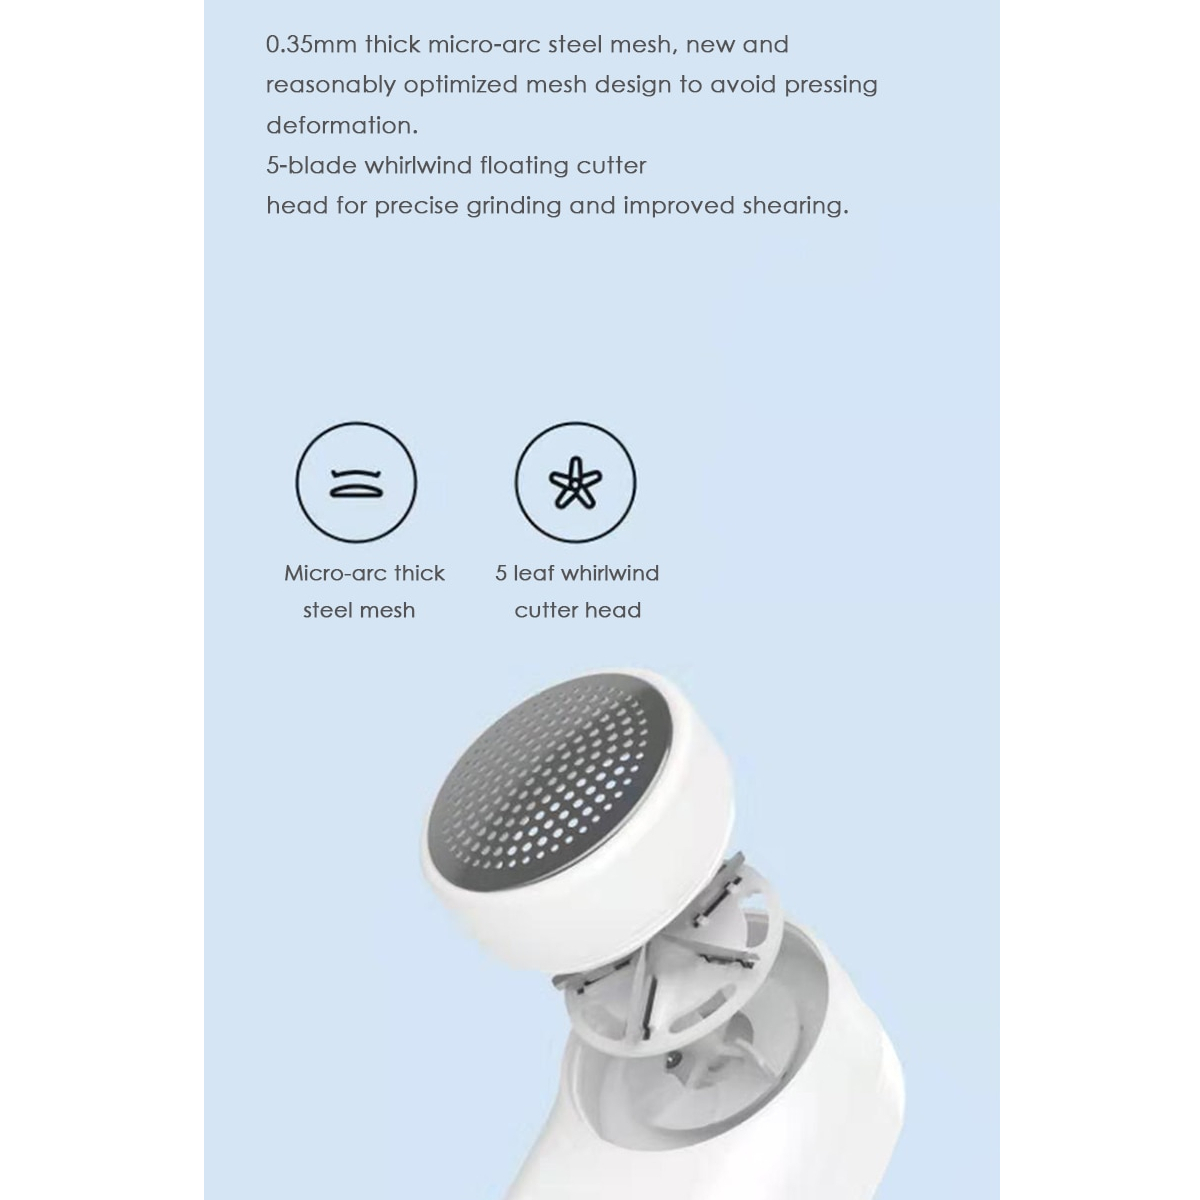 Xiaomi Mijia Portable USB Lint Remover 0.35mm Micro Arc Shaving Mesh Fuzz Trimmer 1300mAh Electric Clothes Sweater Fabric Shaver